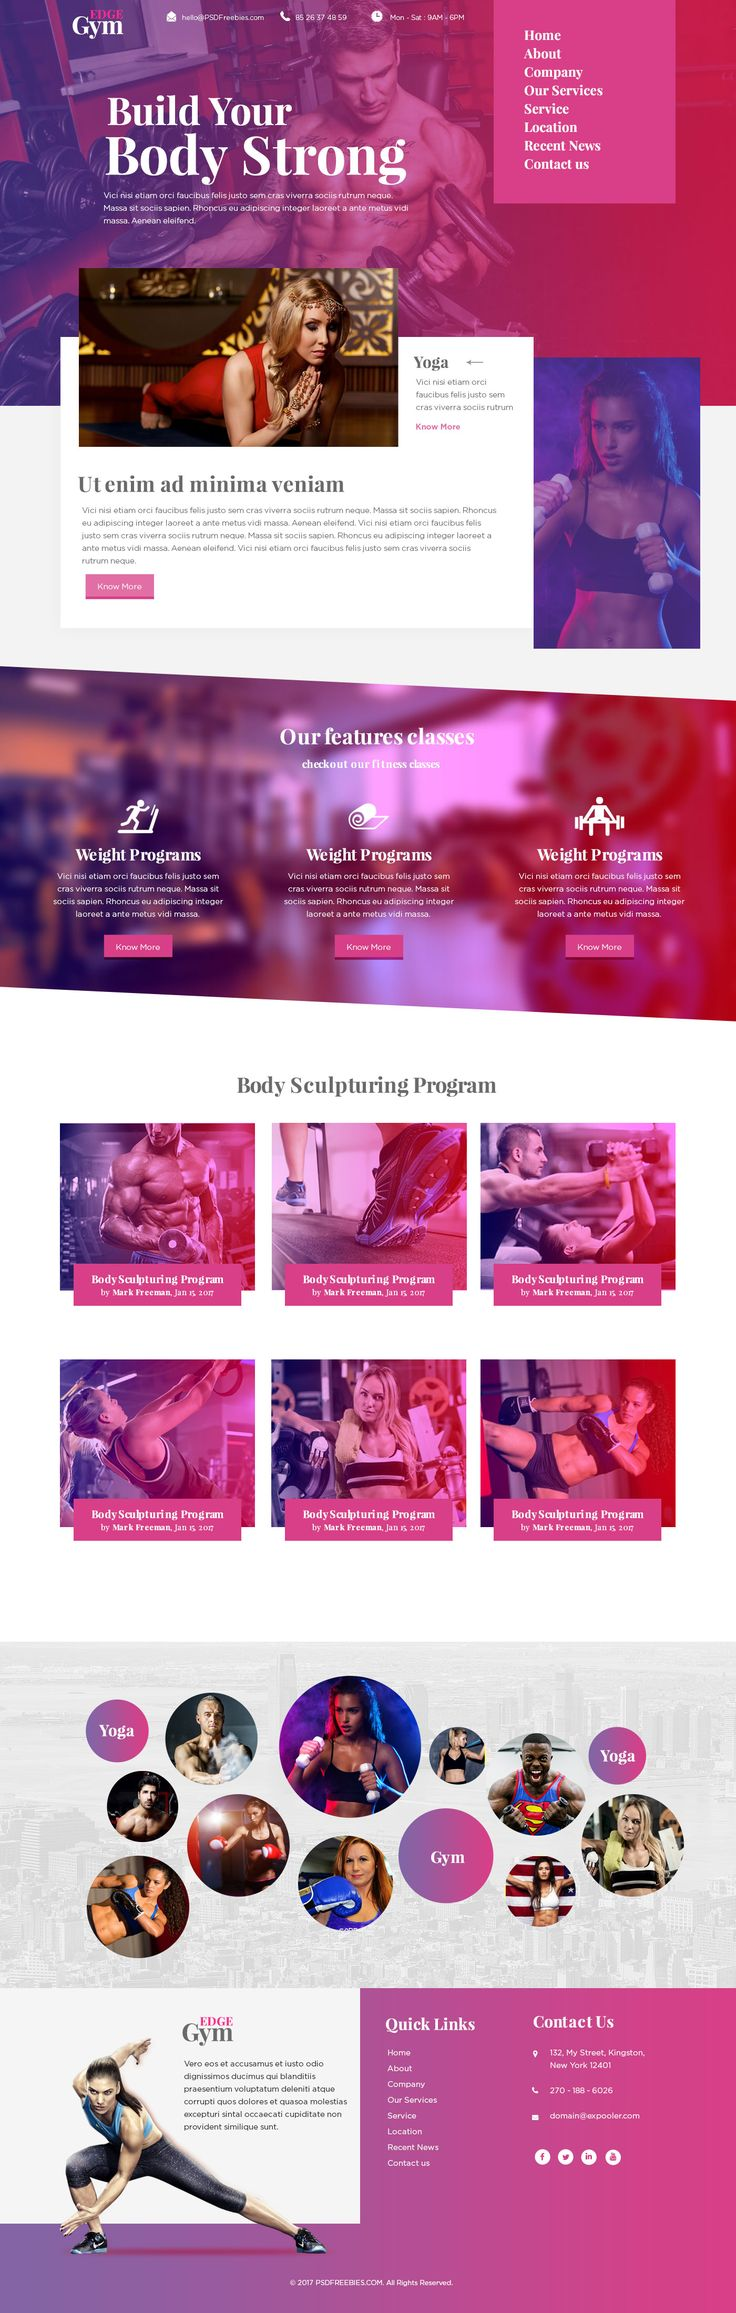 Sports and Fitness Website Template Free PSD. This Free Website PSD Template is one of the Latest and World Standard PSD Template.This…